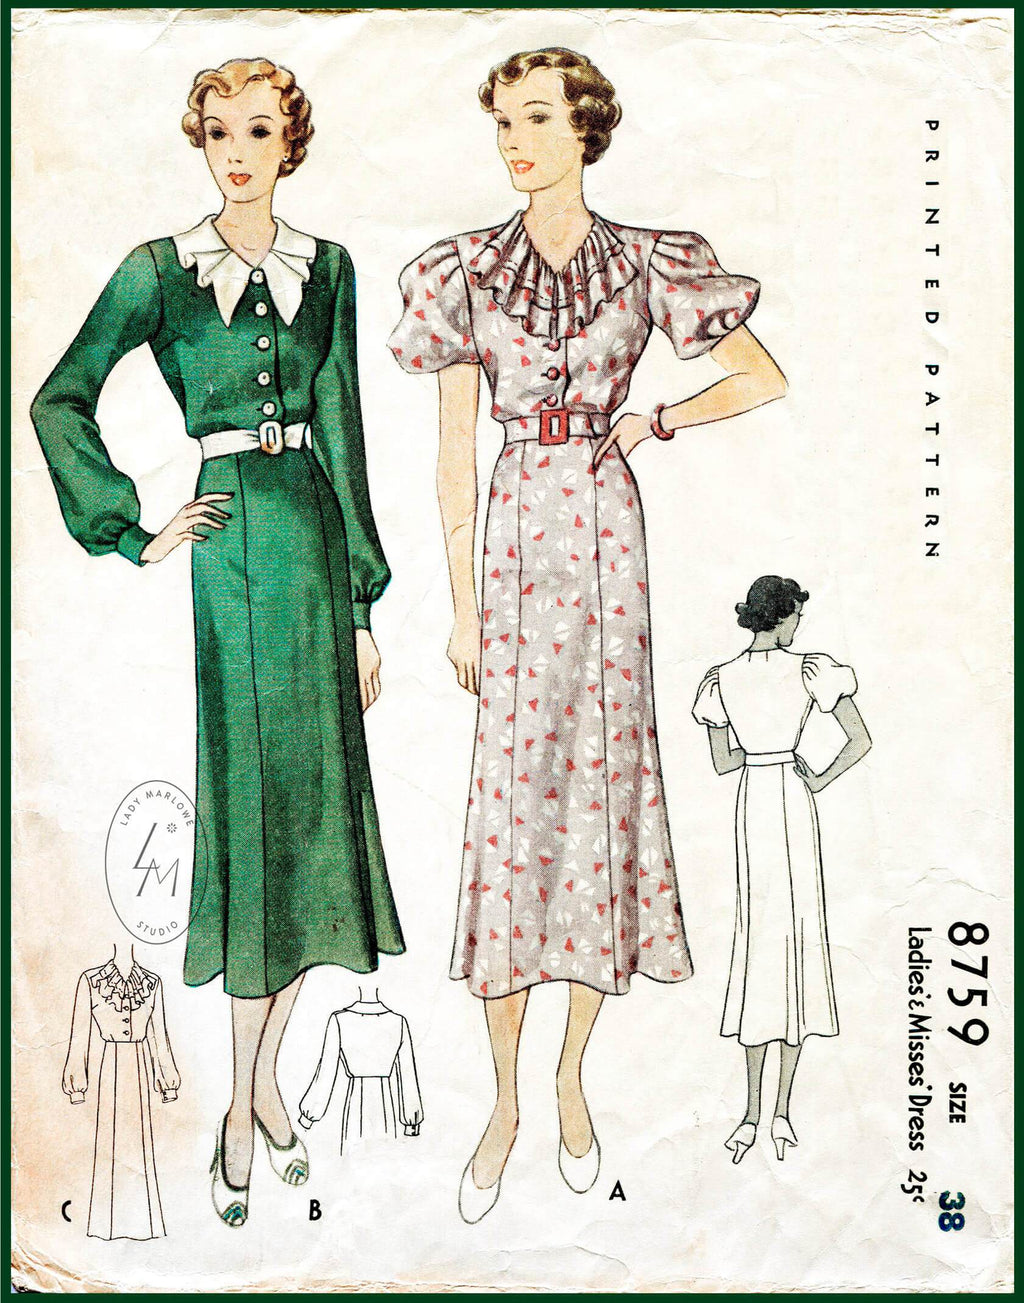 McCall 8759 1930s day dress ruffle collar vintage sewing pattern